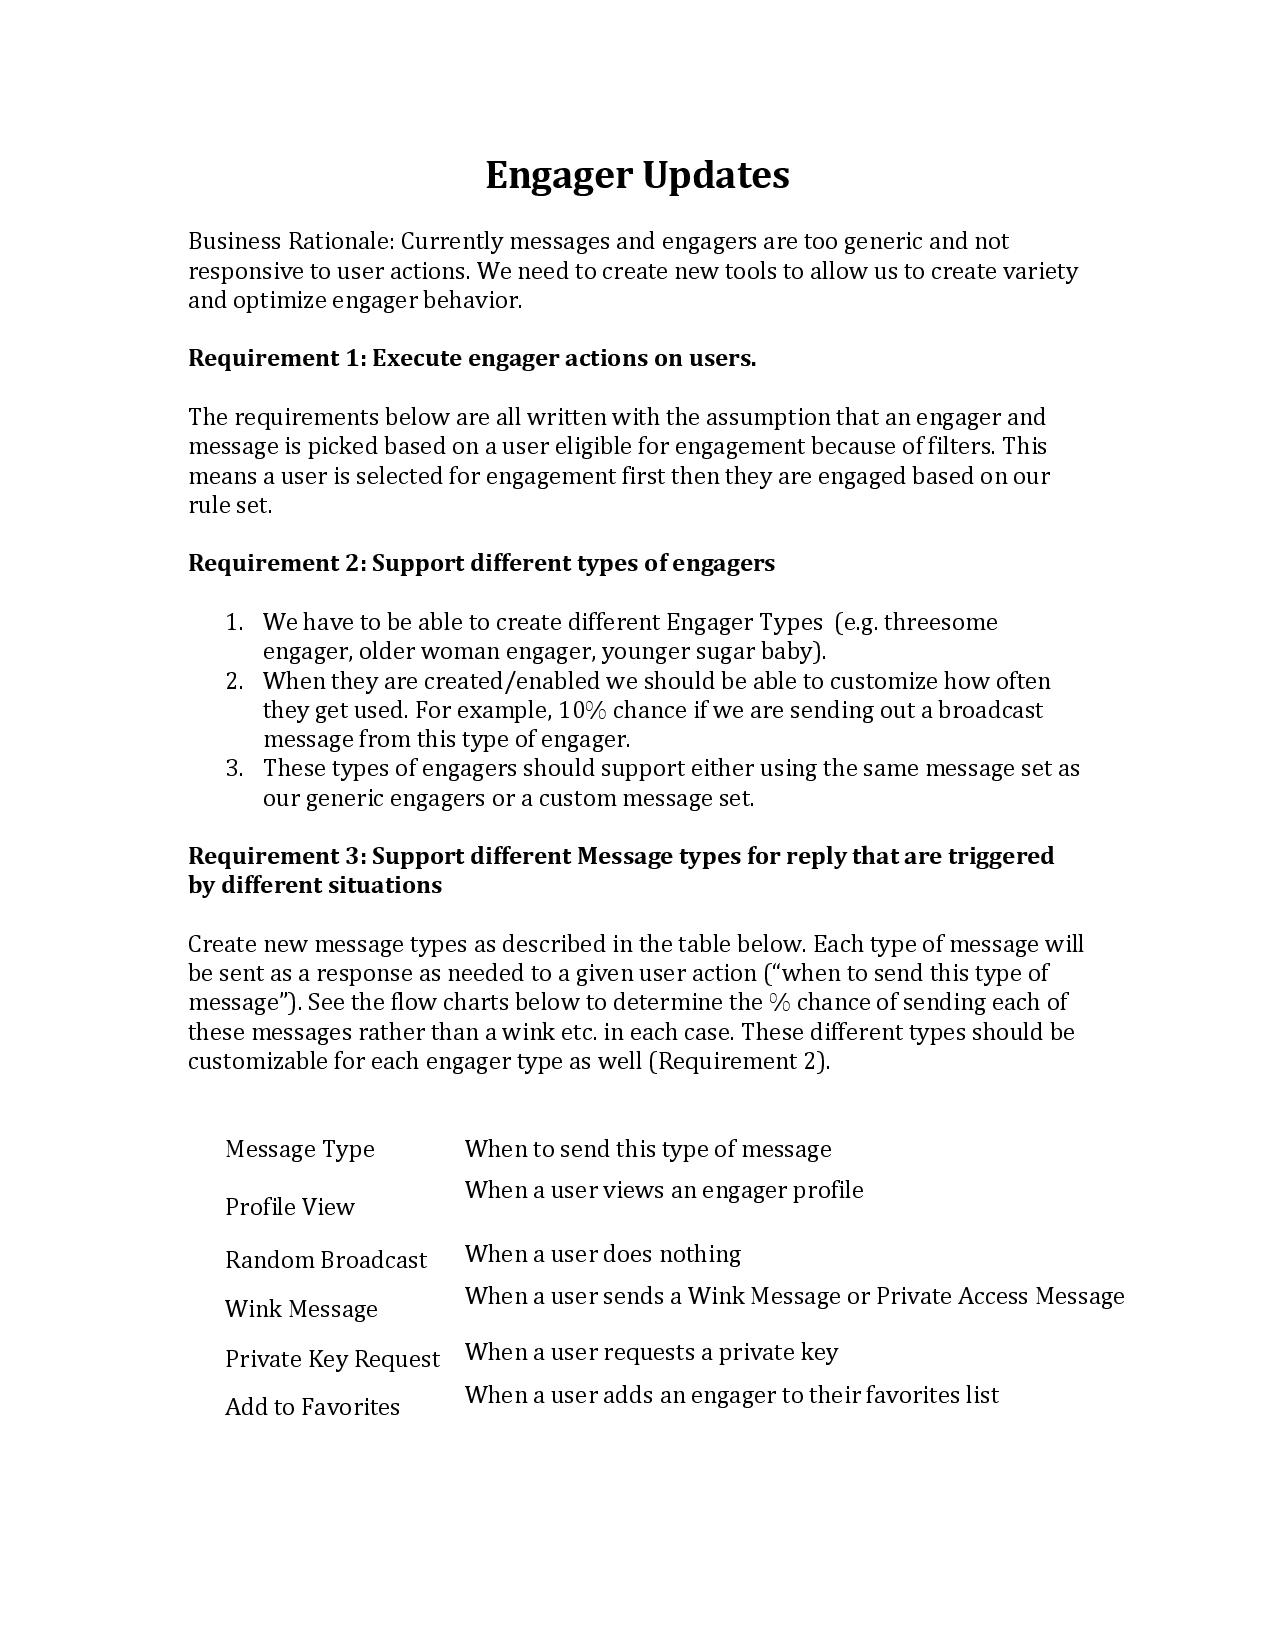 RNT-105 - Product Spec - Engager Updates1.1-page-001.jpg